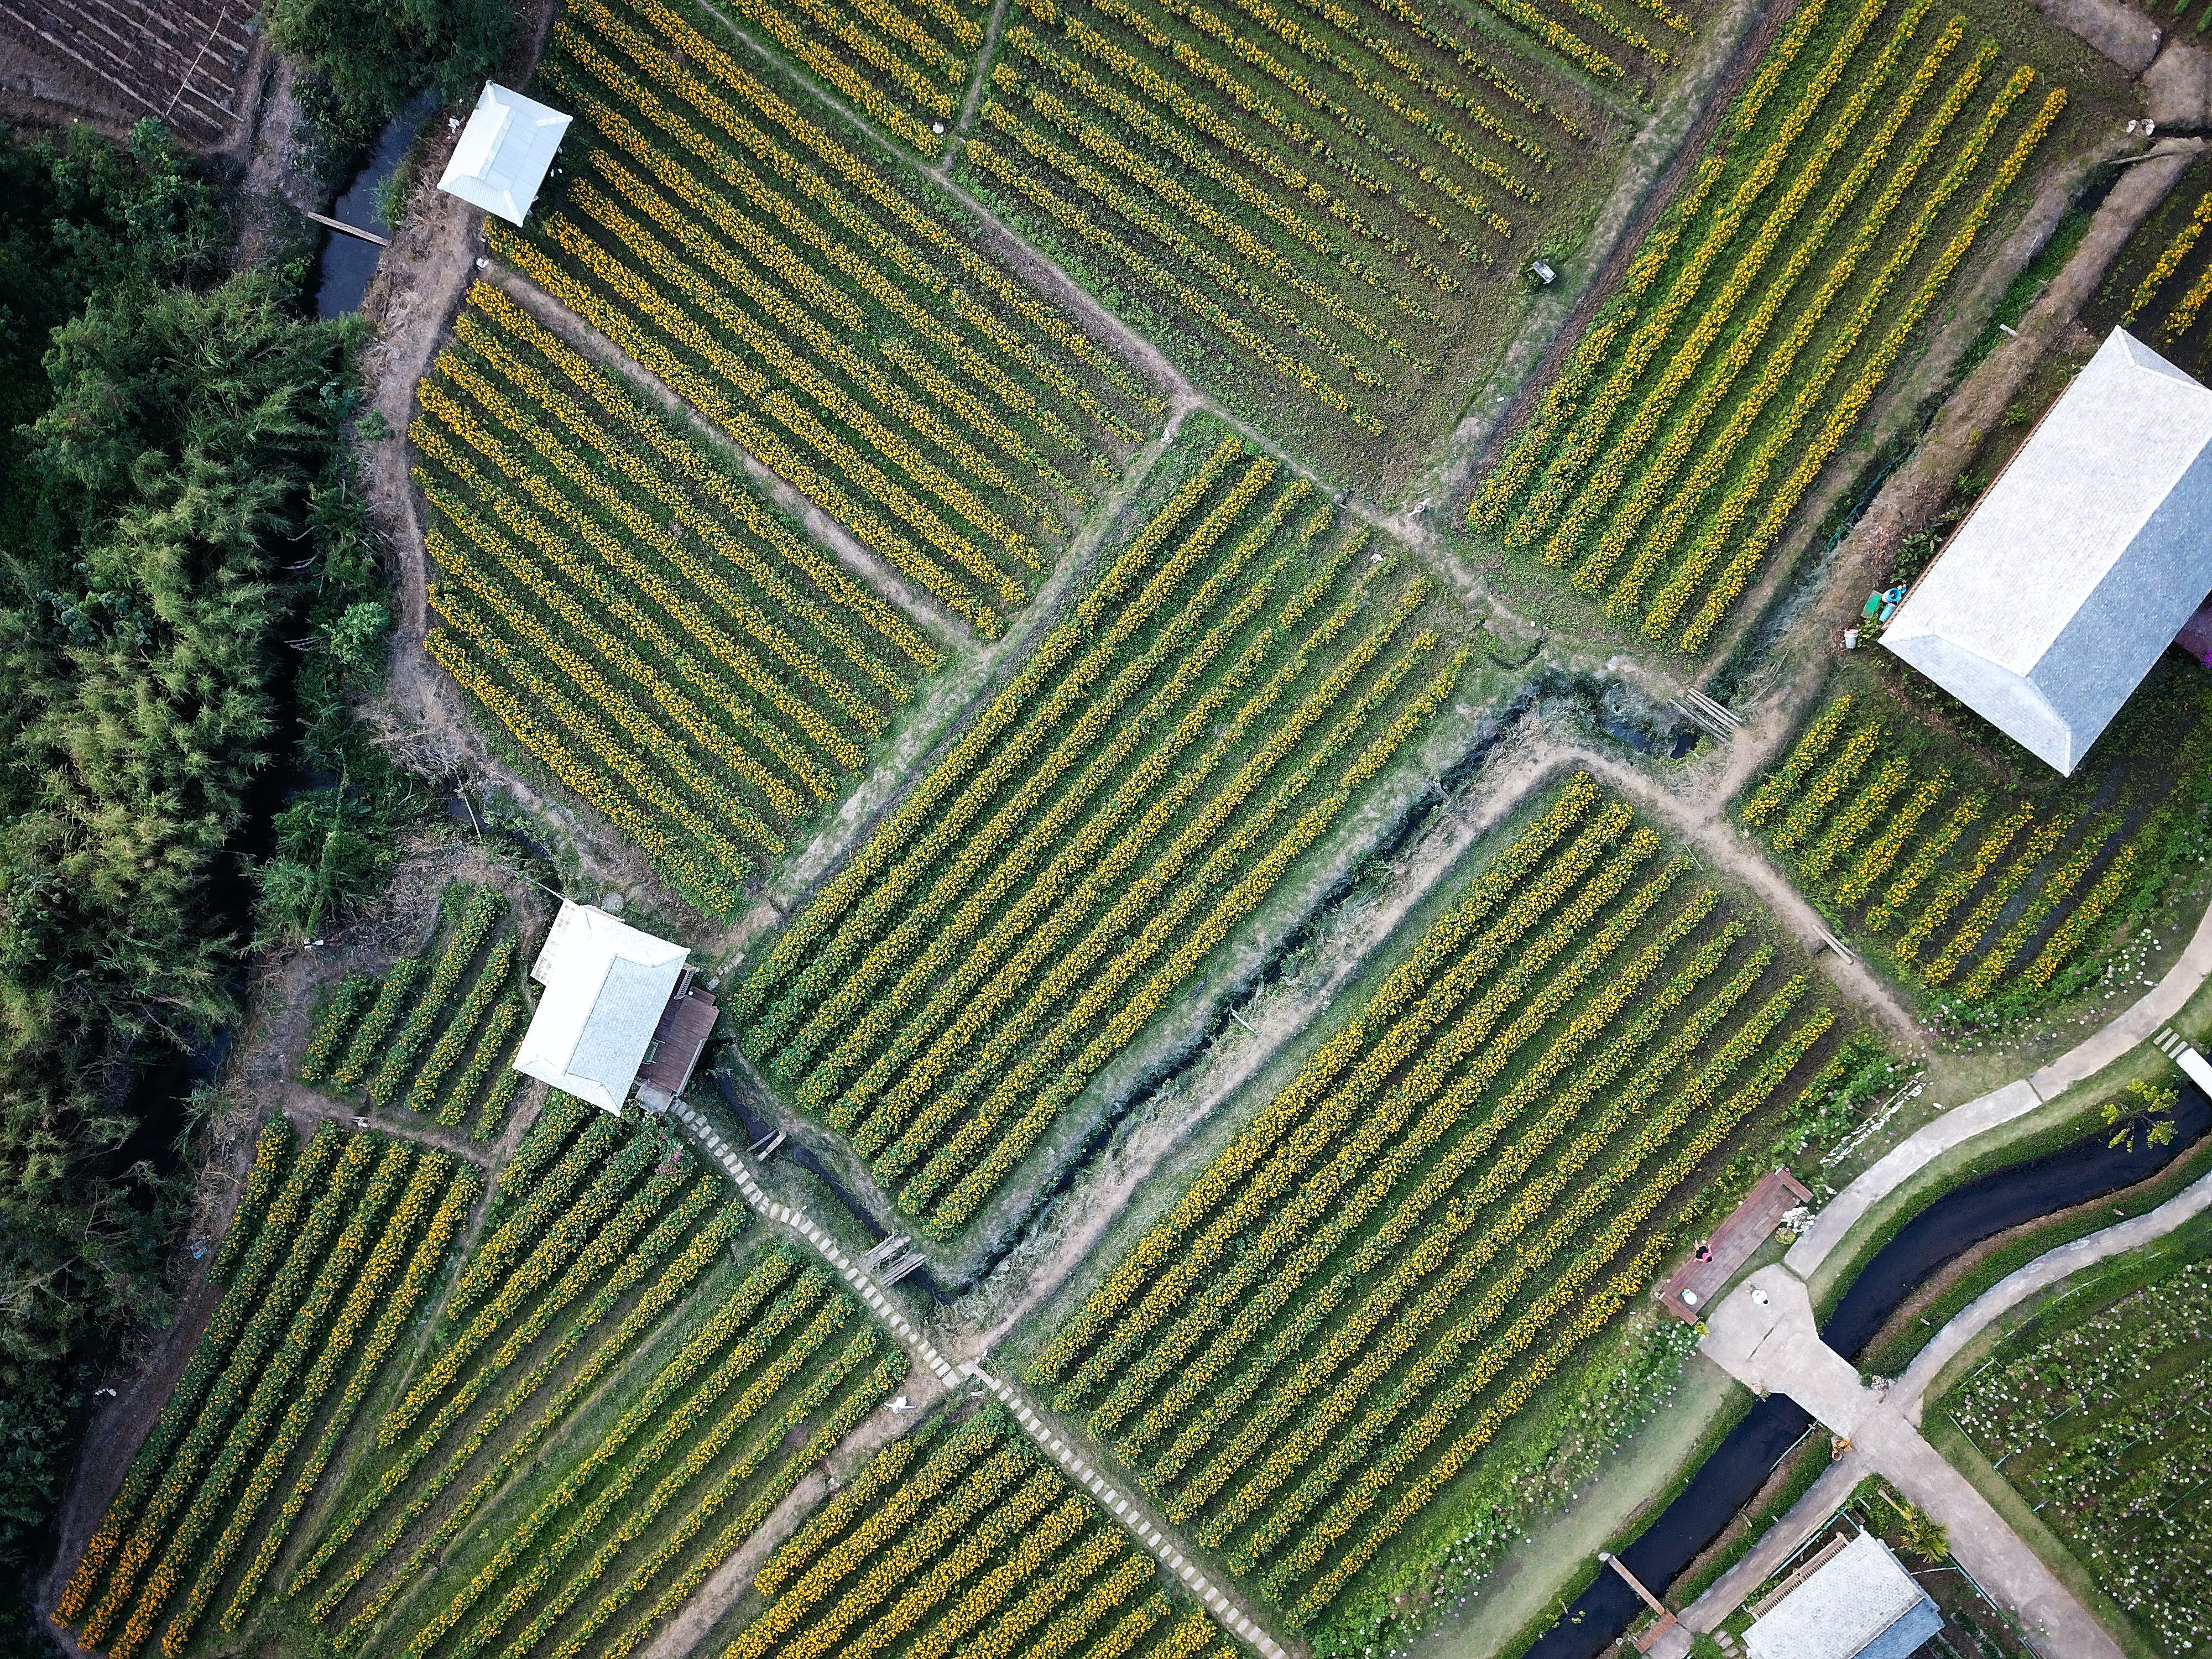 aerial photography of green field and houses at daytime